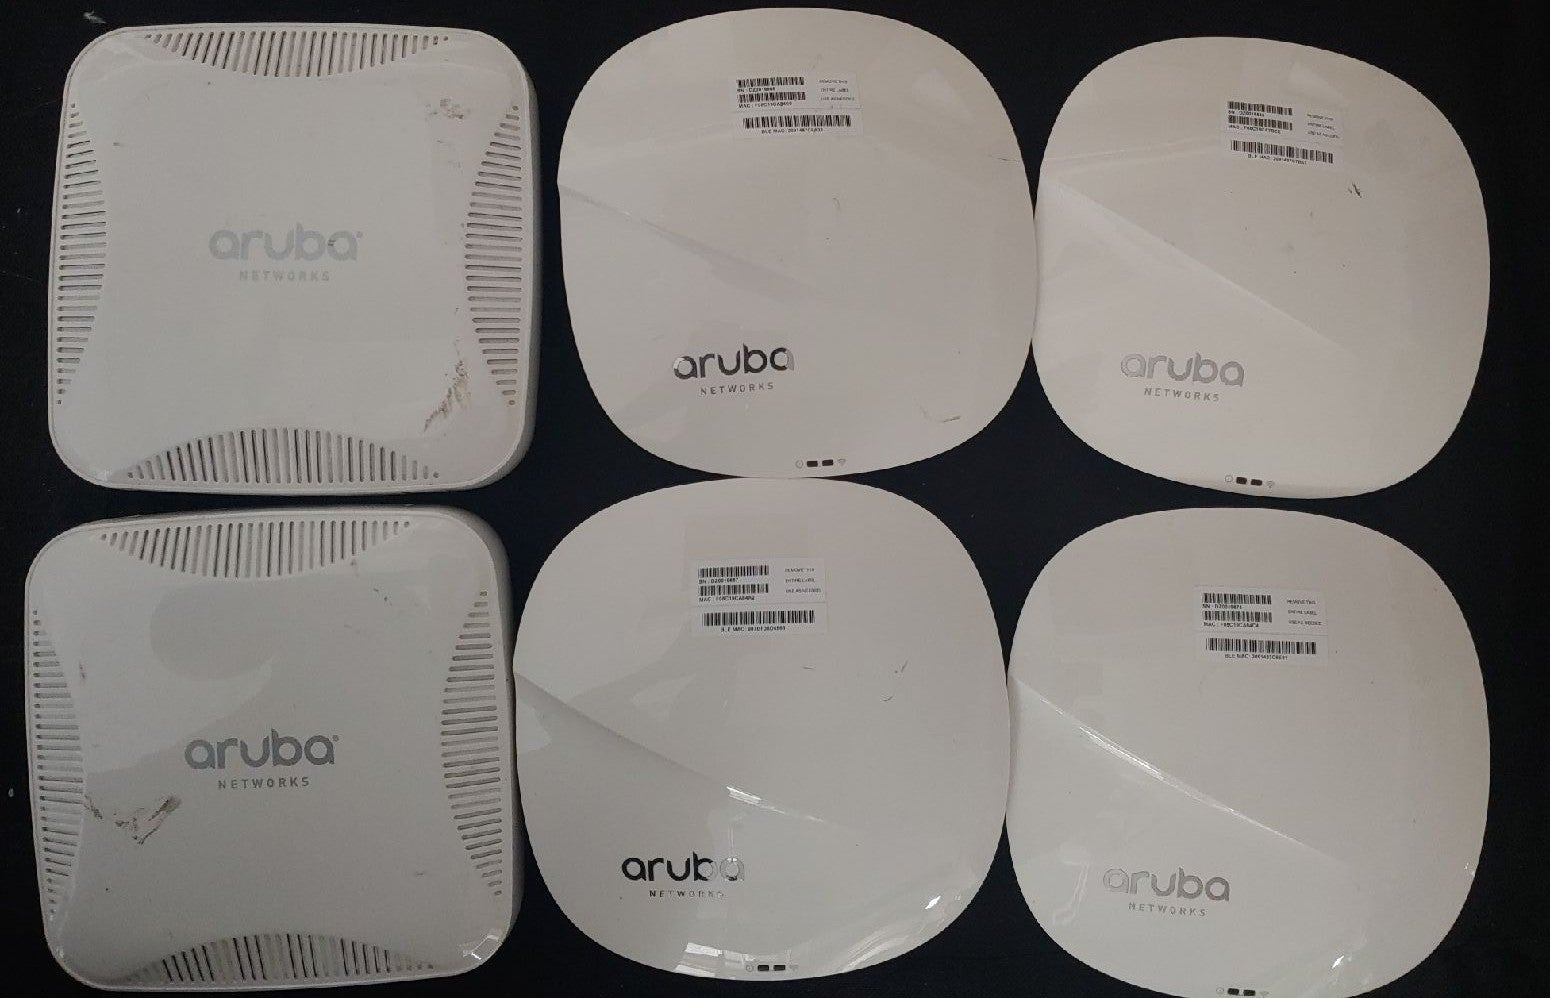 Aruba wireless access points and control